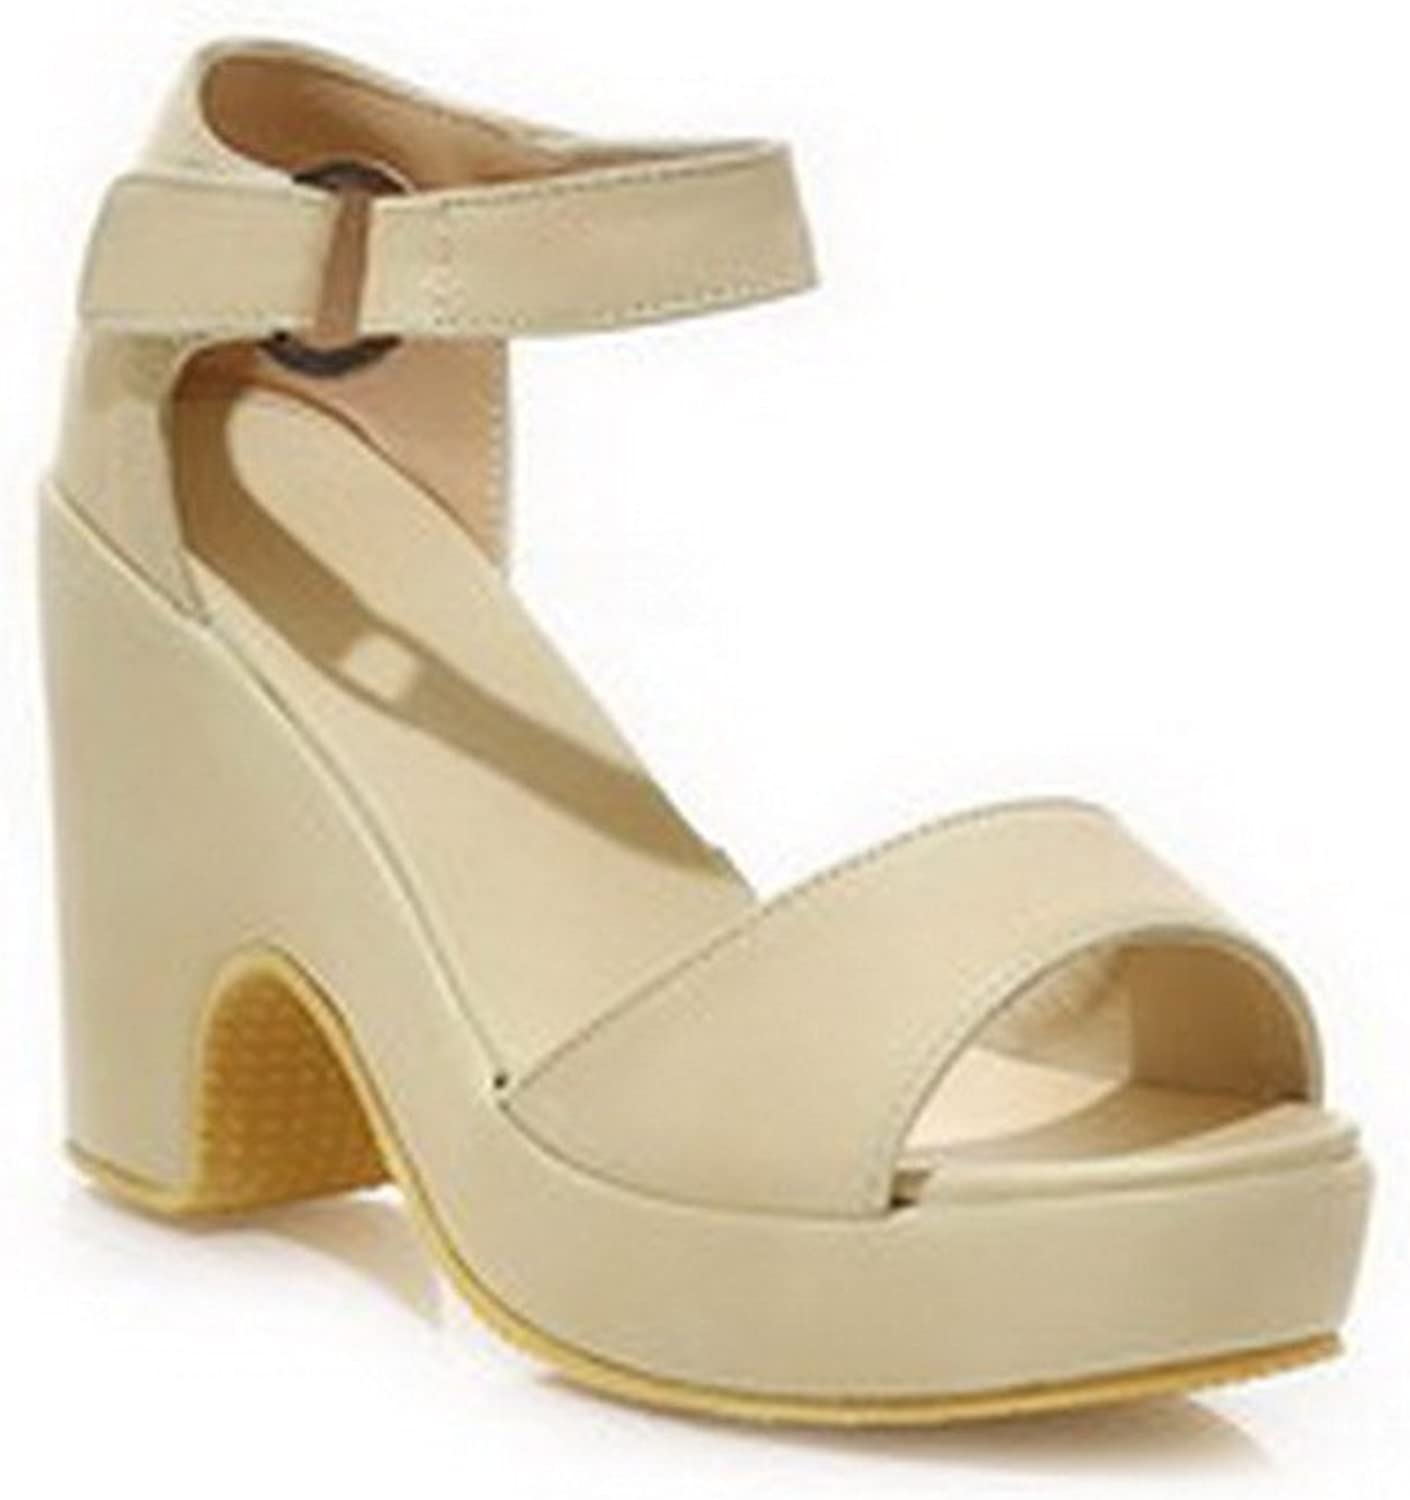 WeiPoot Women's Open Toe High Heel Soft Material Solid Sandals with Buckle, Beige, 7.5 B(M) US